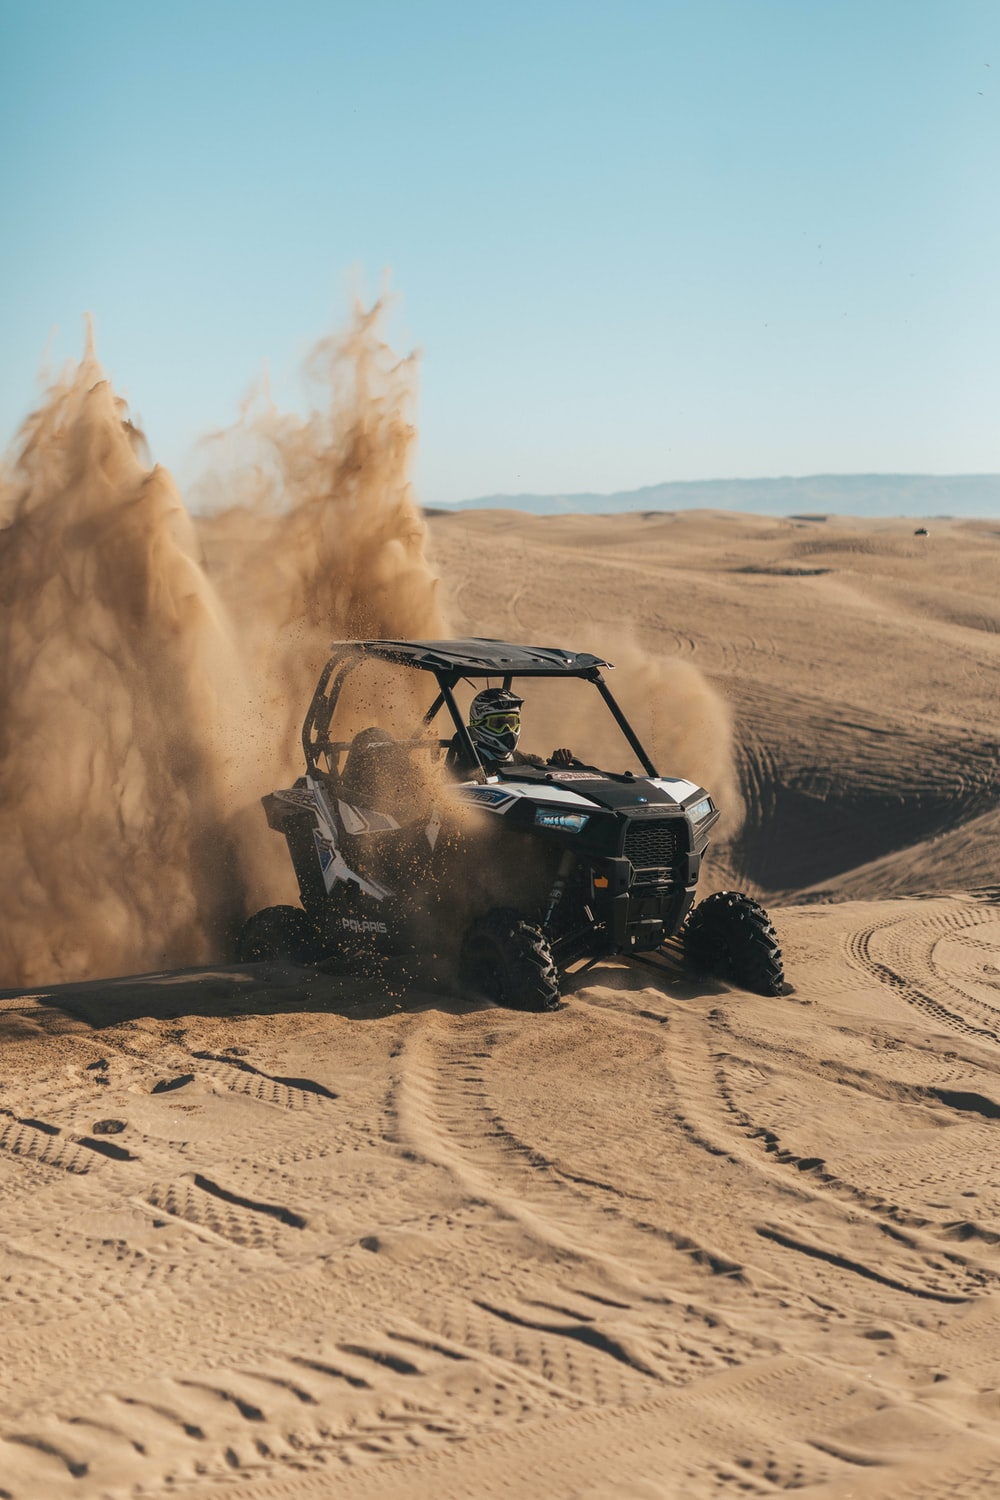 person riding an UTV on desert